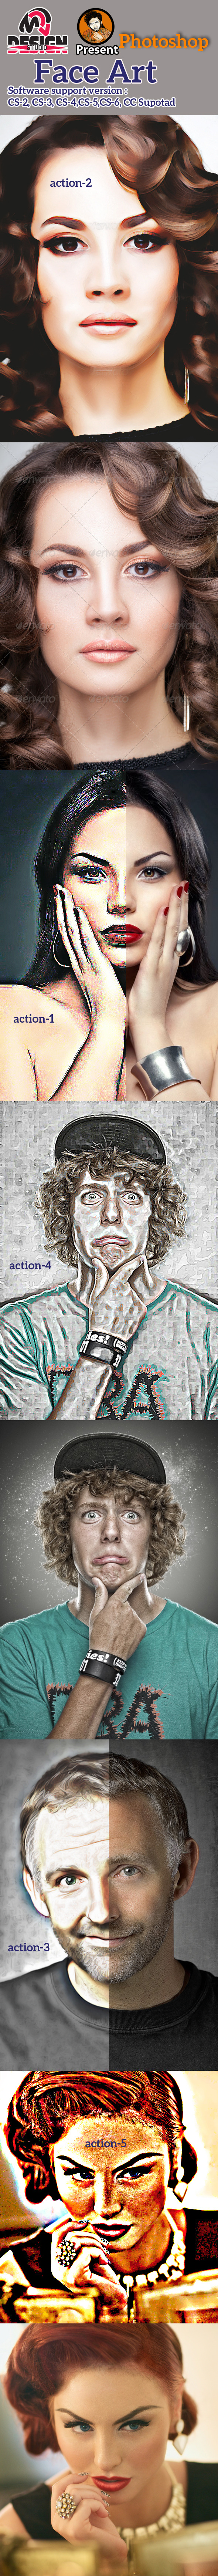 GraphicRiver Face Art Action 11444402